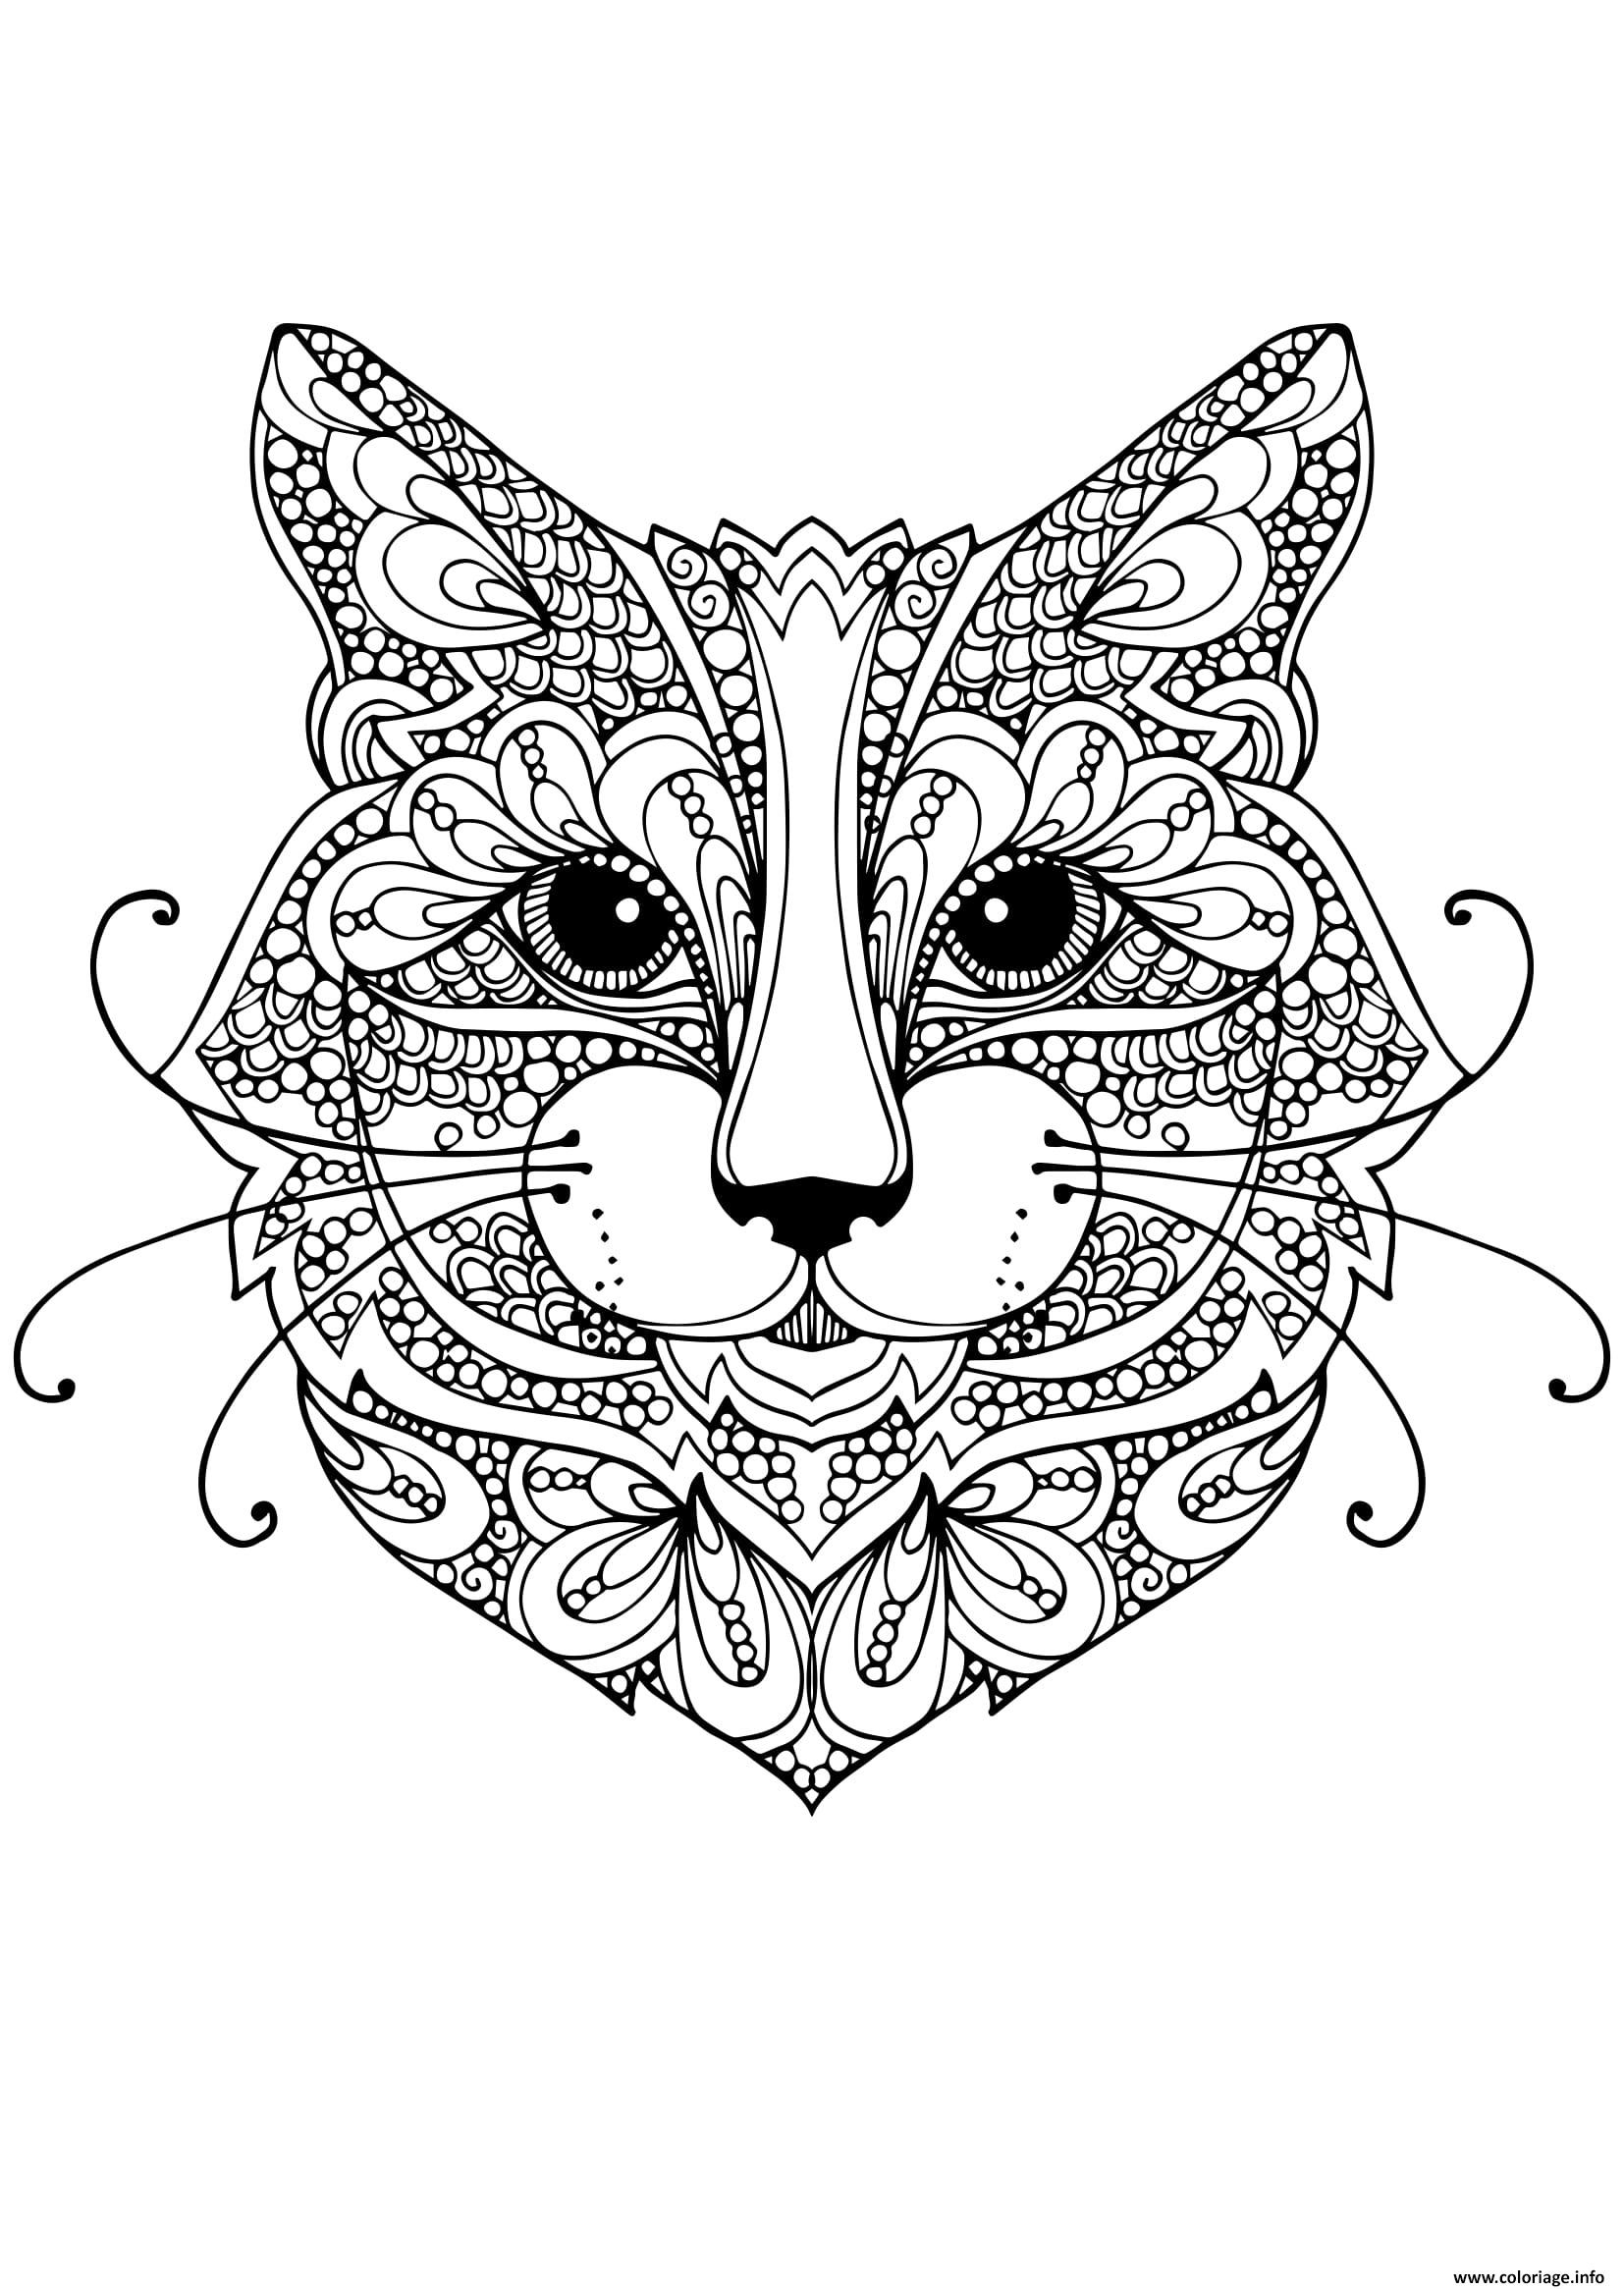 Coloriage Chat Mandala Adulte Anti Stress Dessin concernant Coloriage De Chat En Ligne